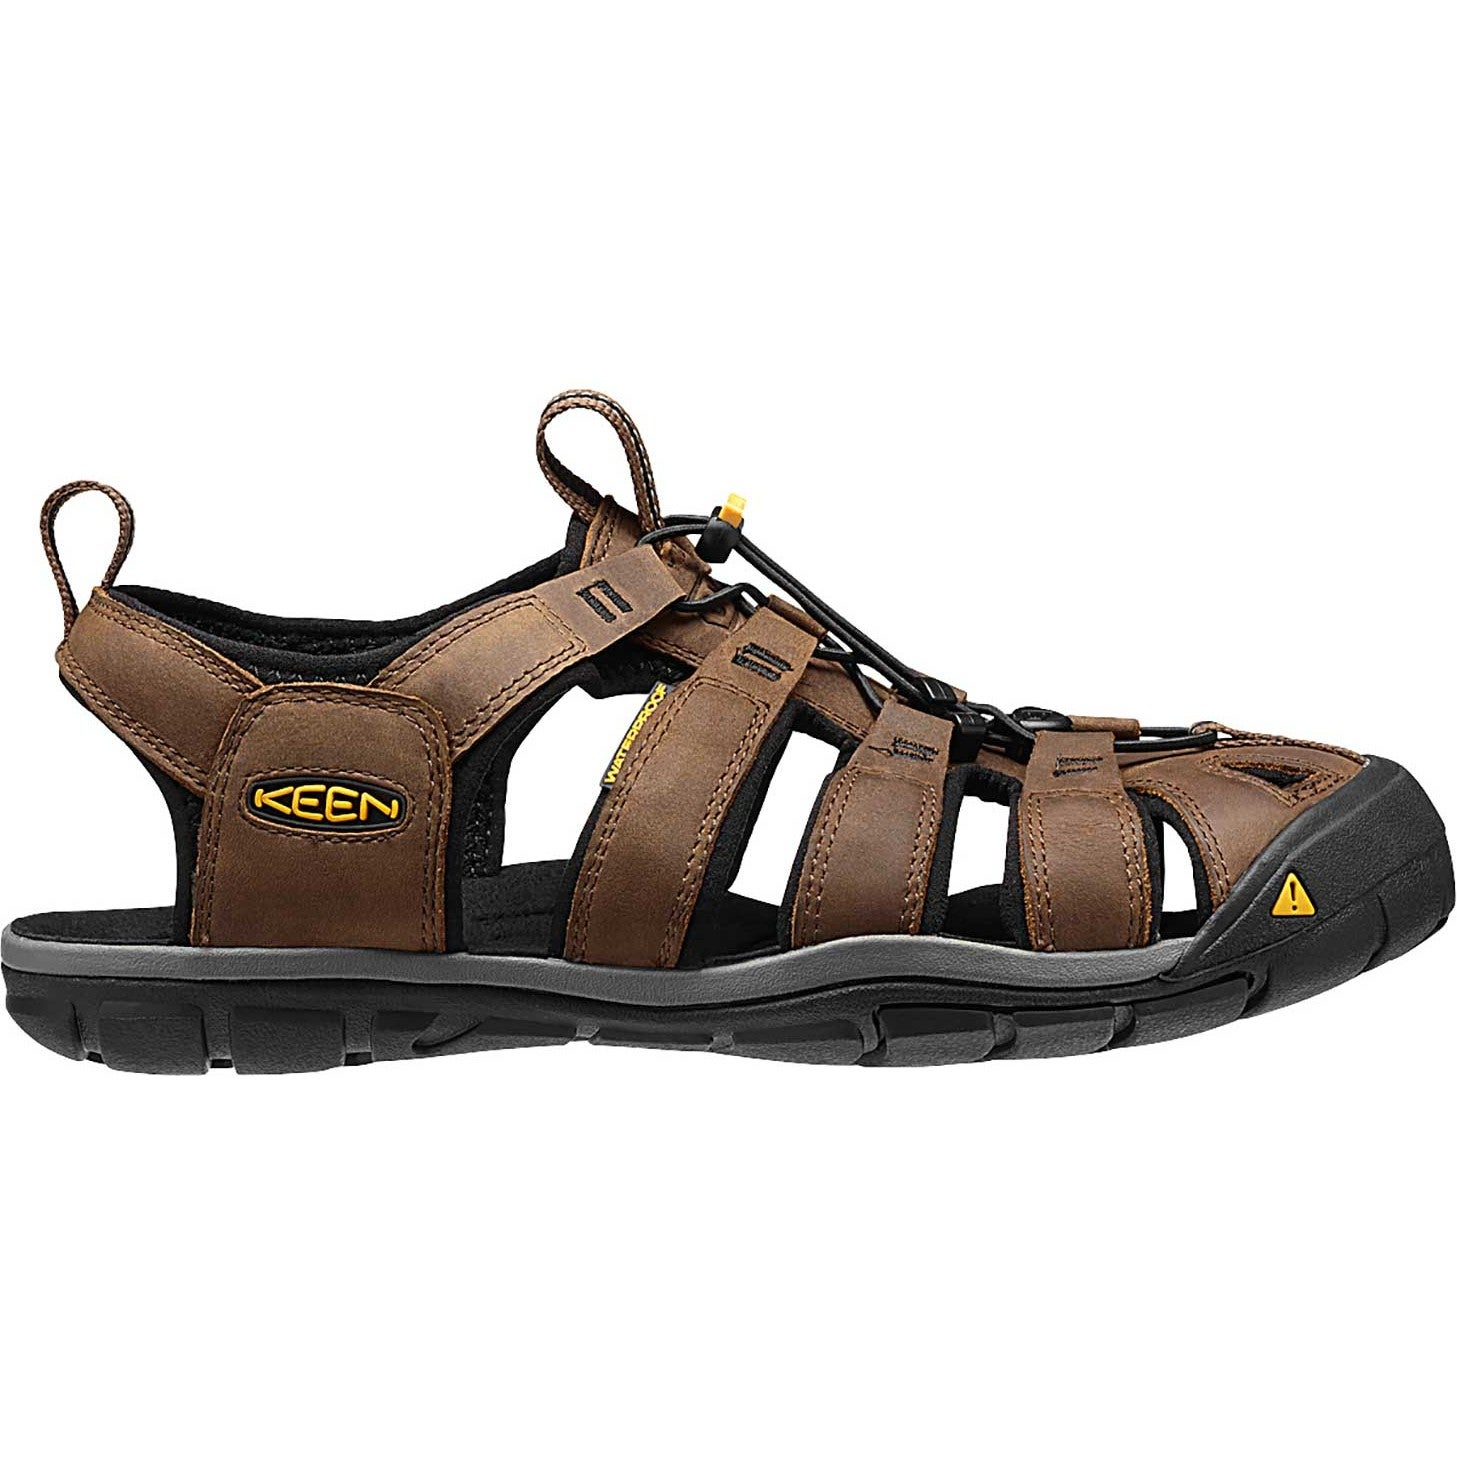 4ab37f22bd32 Keen Clearwater Cnx Leather Mens Footwear Sandals - Dark Earth Black ...